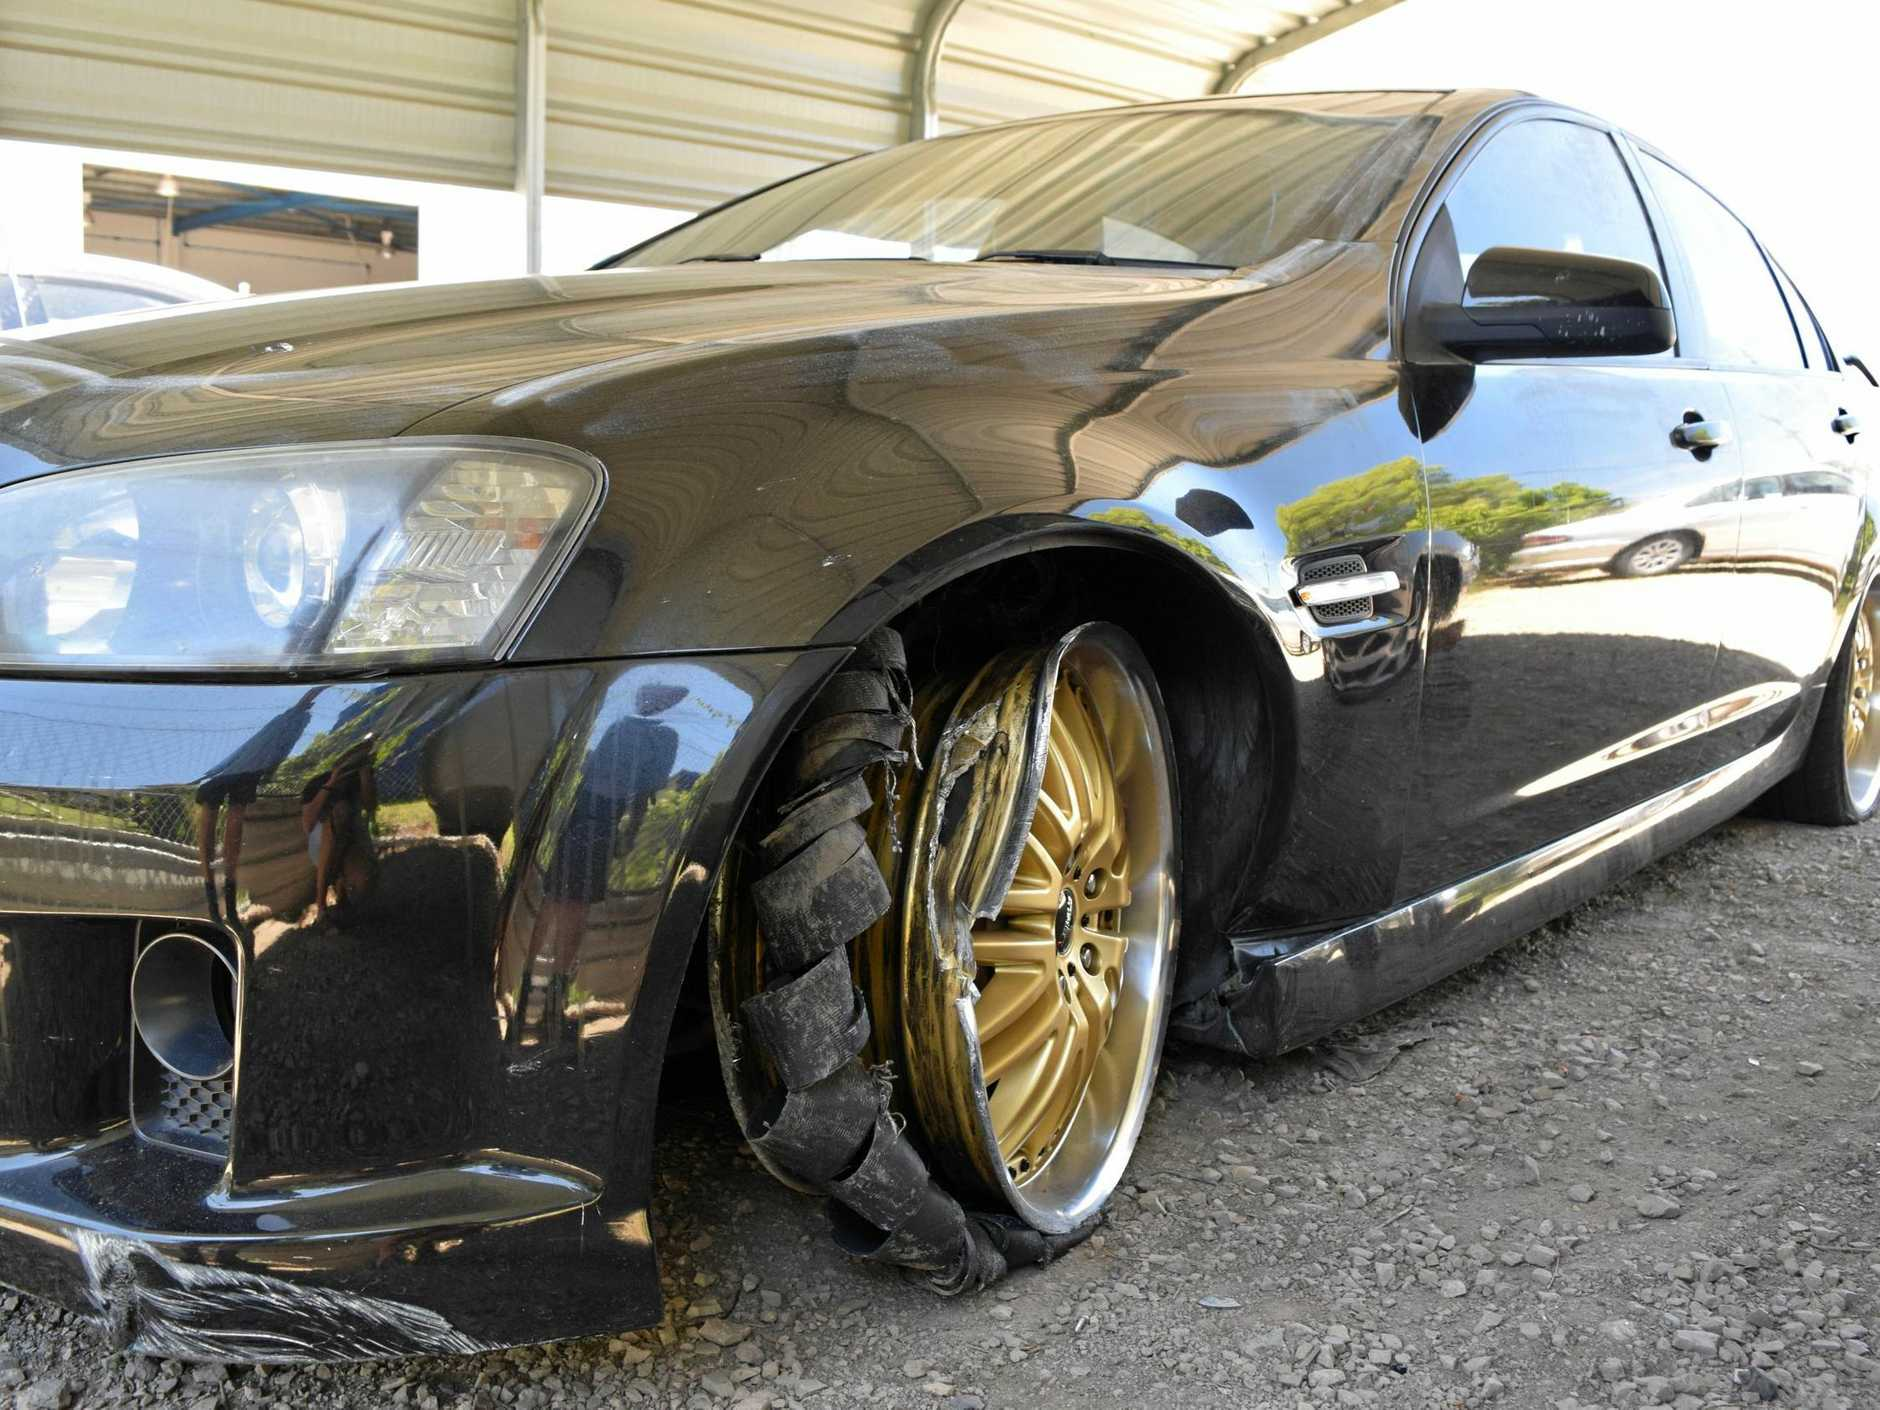 Tyres and rims of the Holden Commodore were destroyed after a police chase from Caloundra to Kawana on Sunday night.